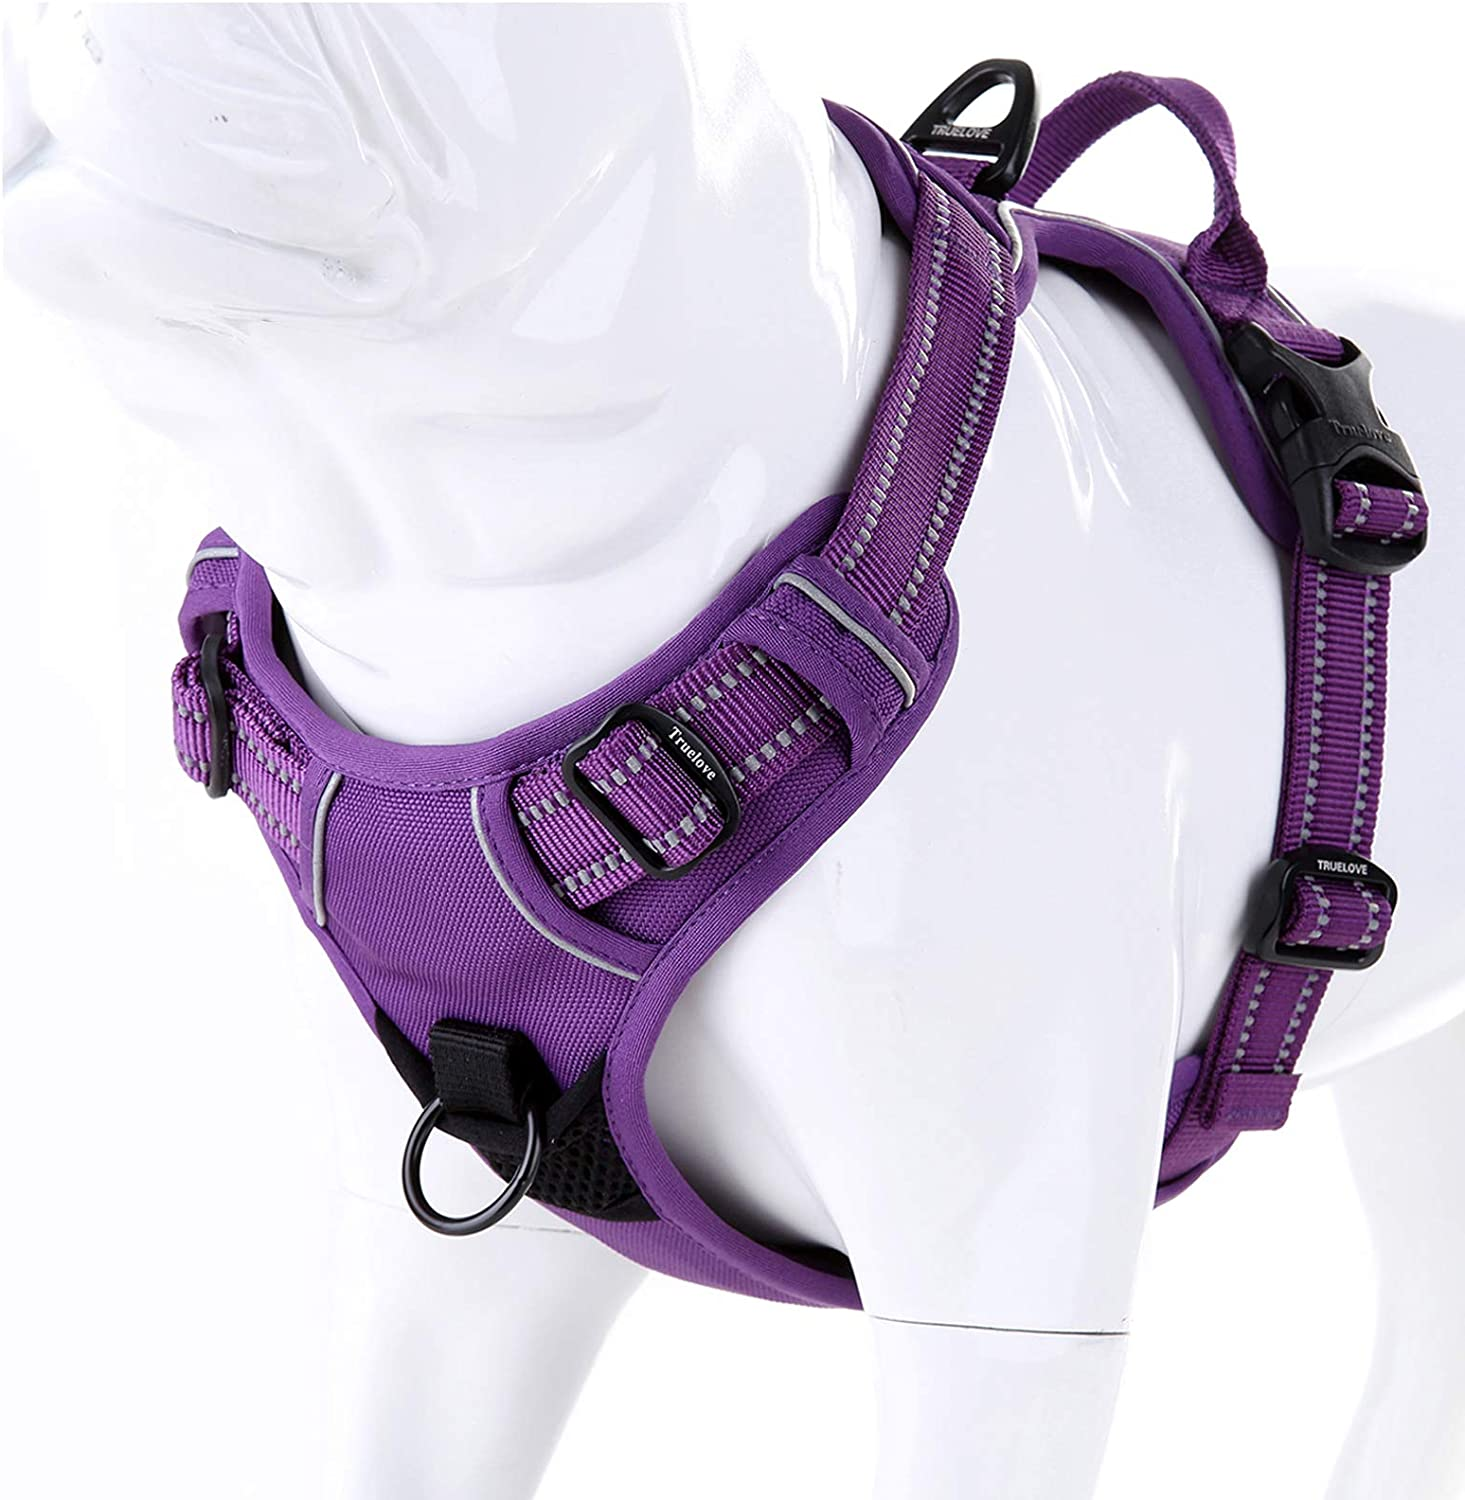 juxzh-Truelove-Soft-Front-Dog-Harness-.Best-Reflective-No-Pull-Harness-with-Handle-and-2-Leash-Attachments